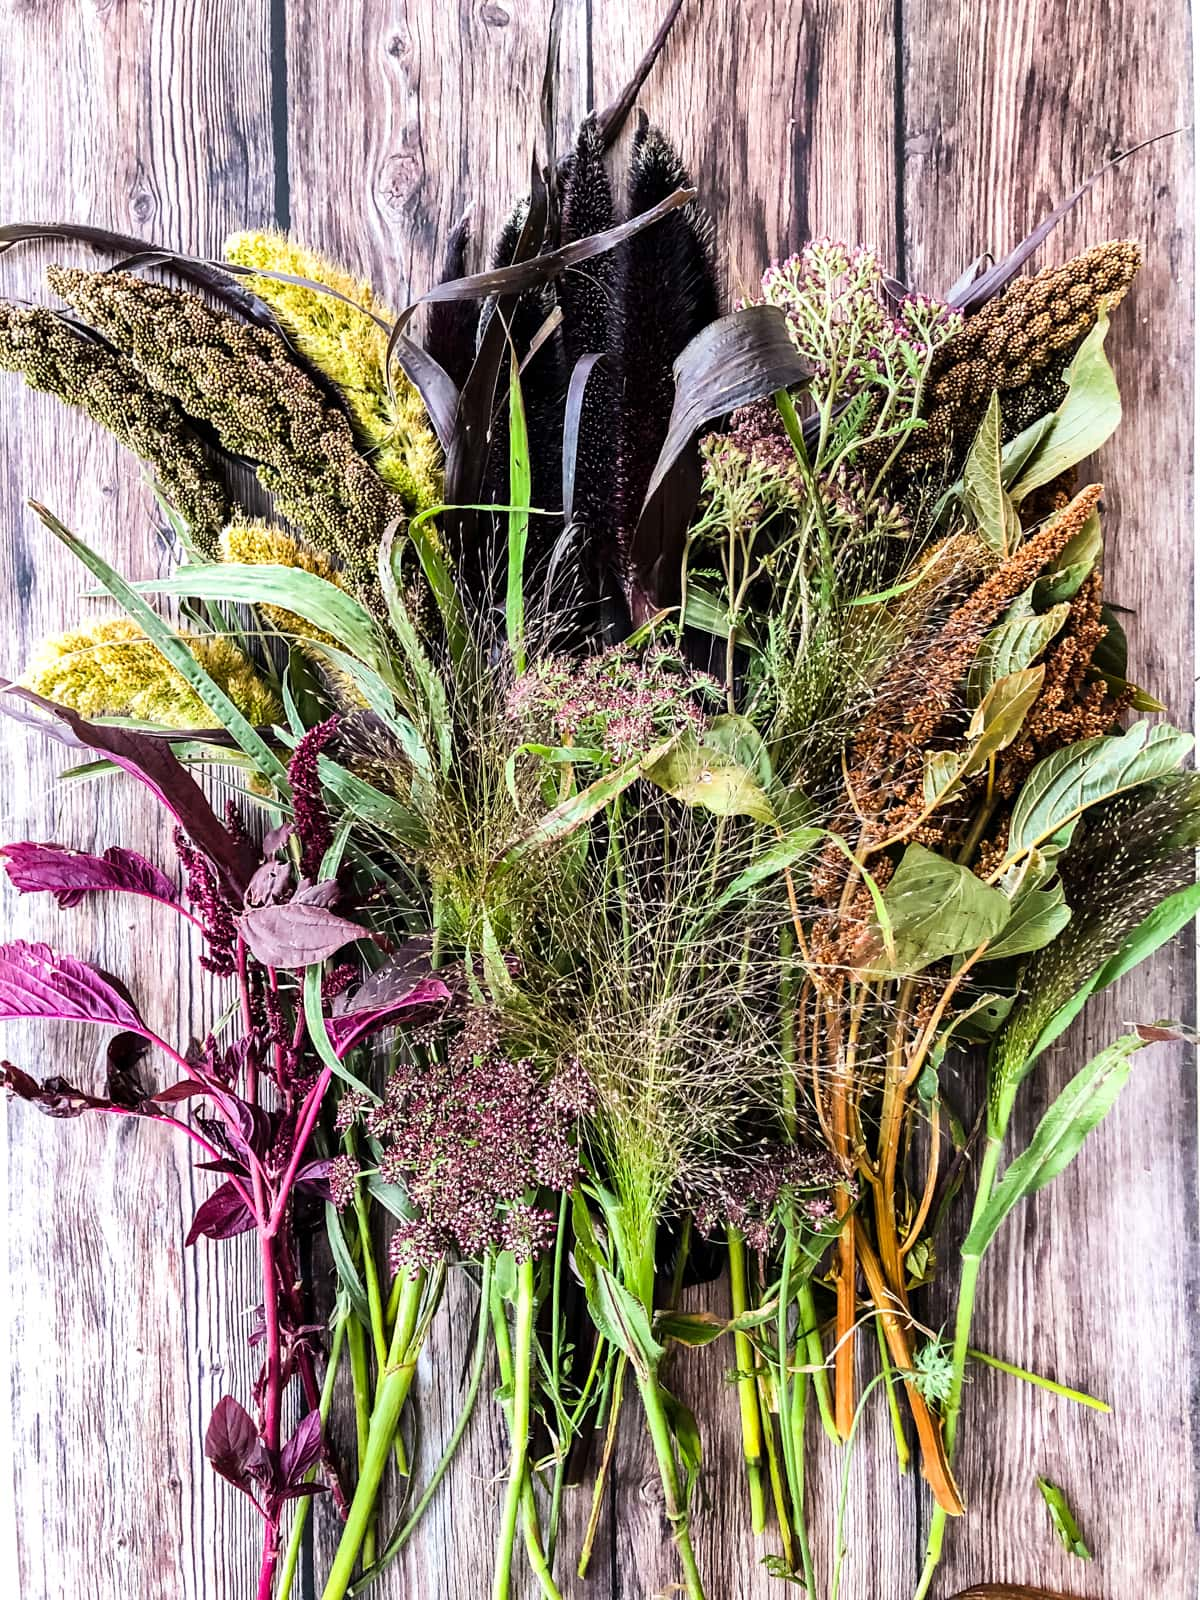 A top down view of fall grasses and flowers laid out on a wooden table